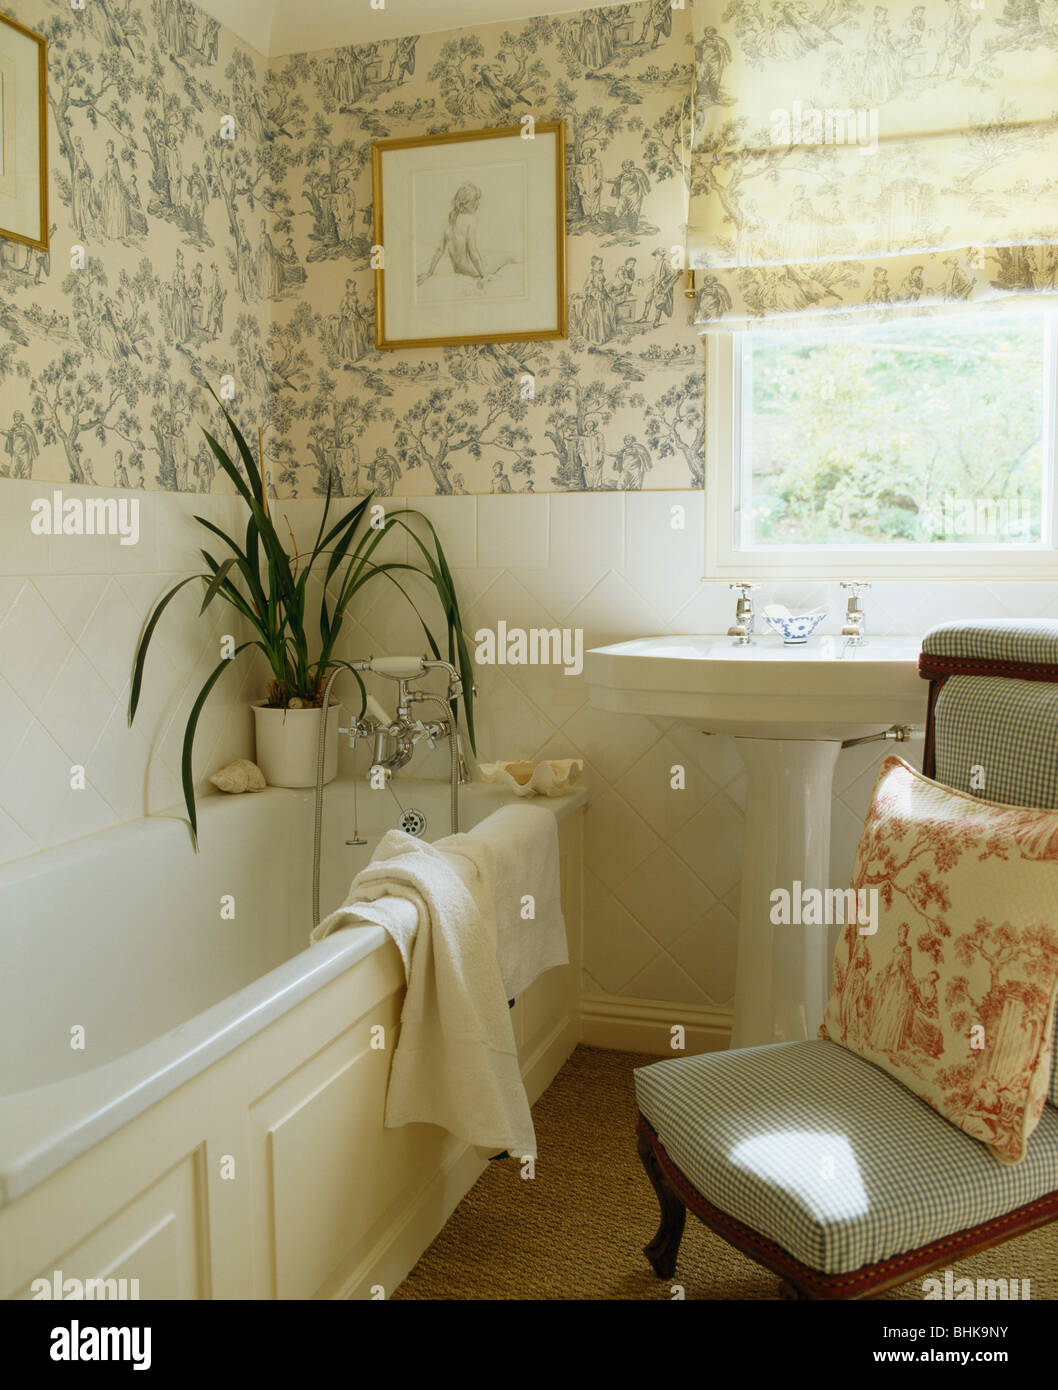 Blue White Toile De Jouy Wallpaper And Blind In Small Bathroom